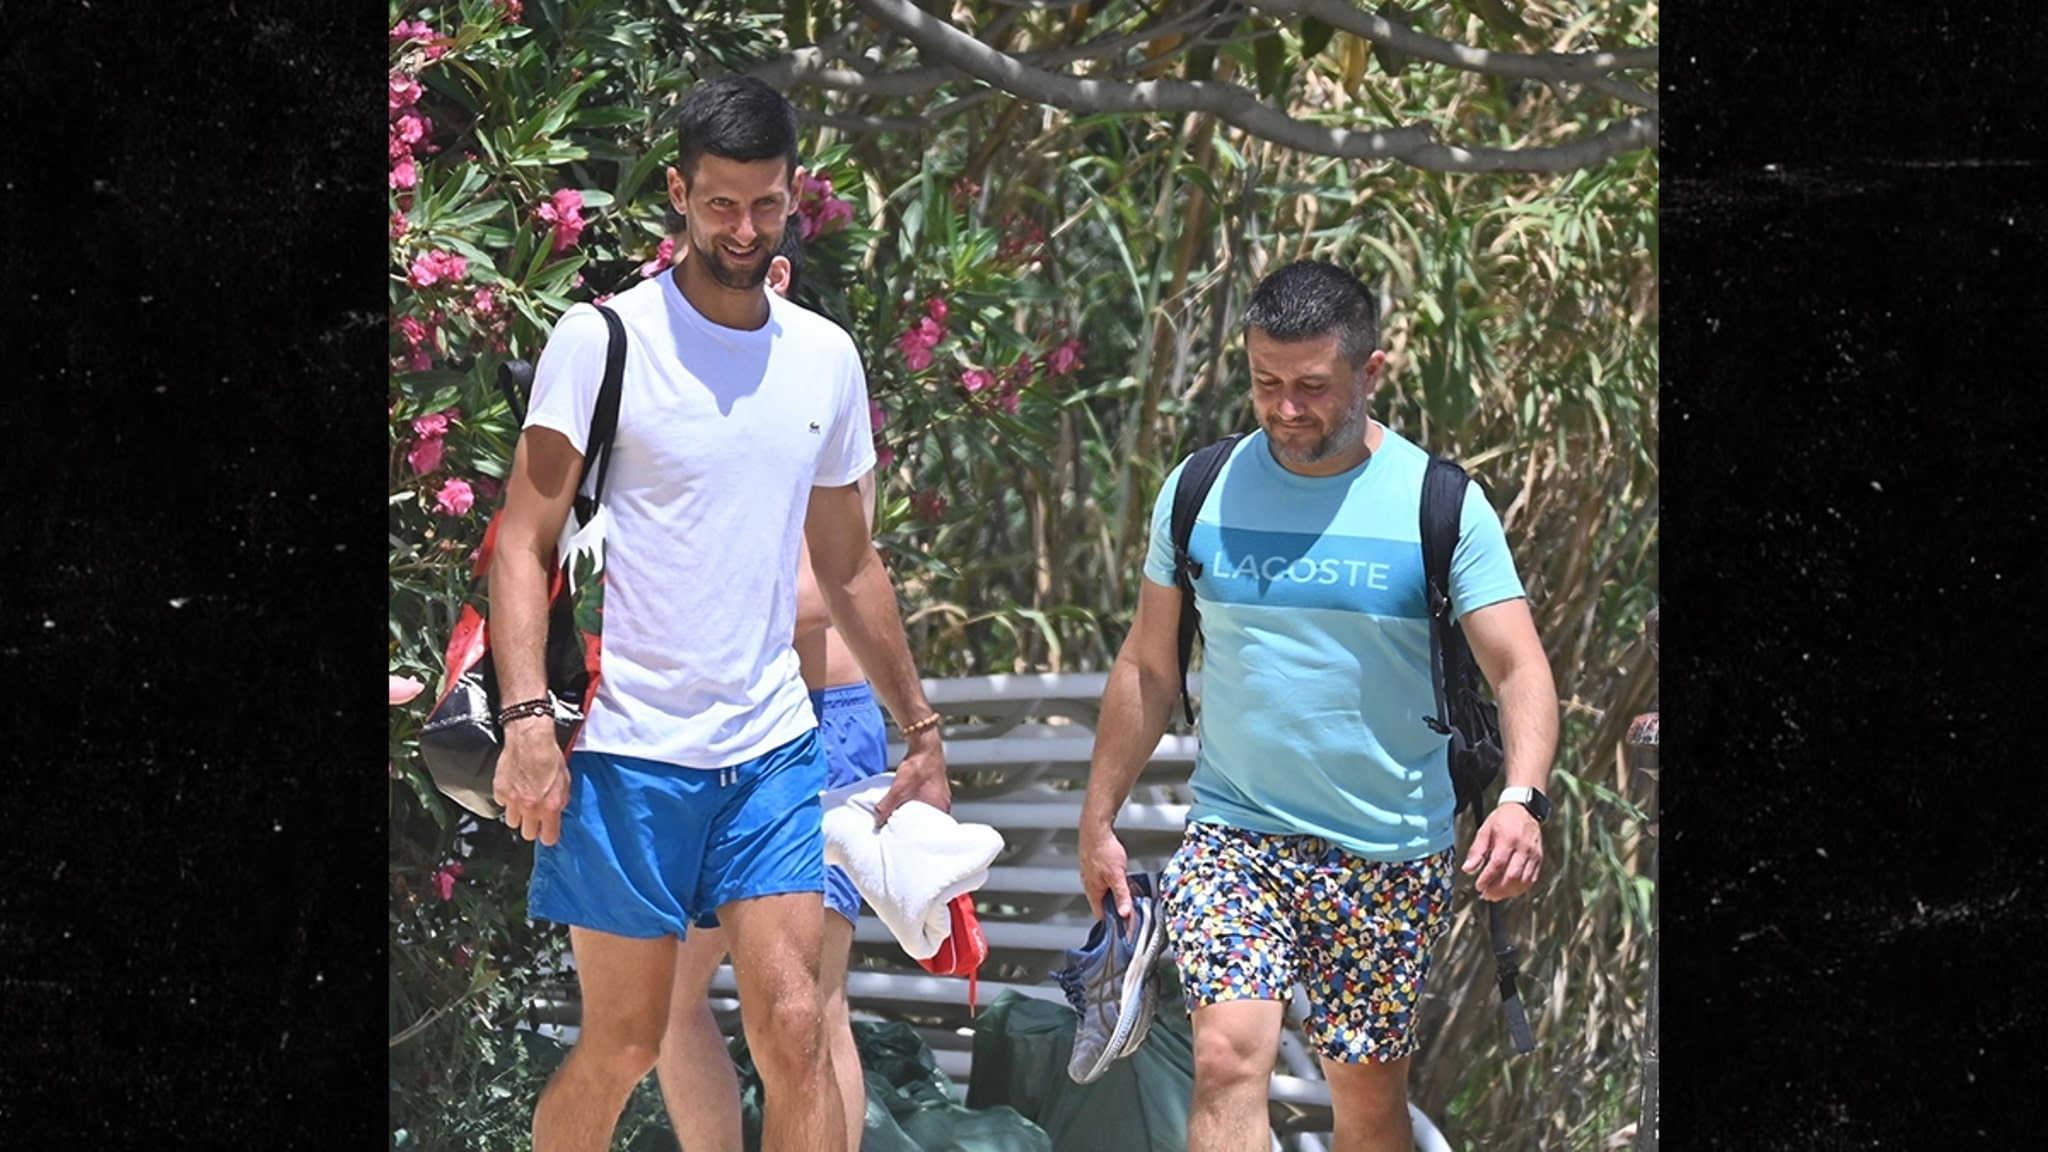 Novak Djokovic Blows Off Mask, Social Distancing in Spain After COVID Incident